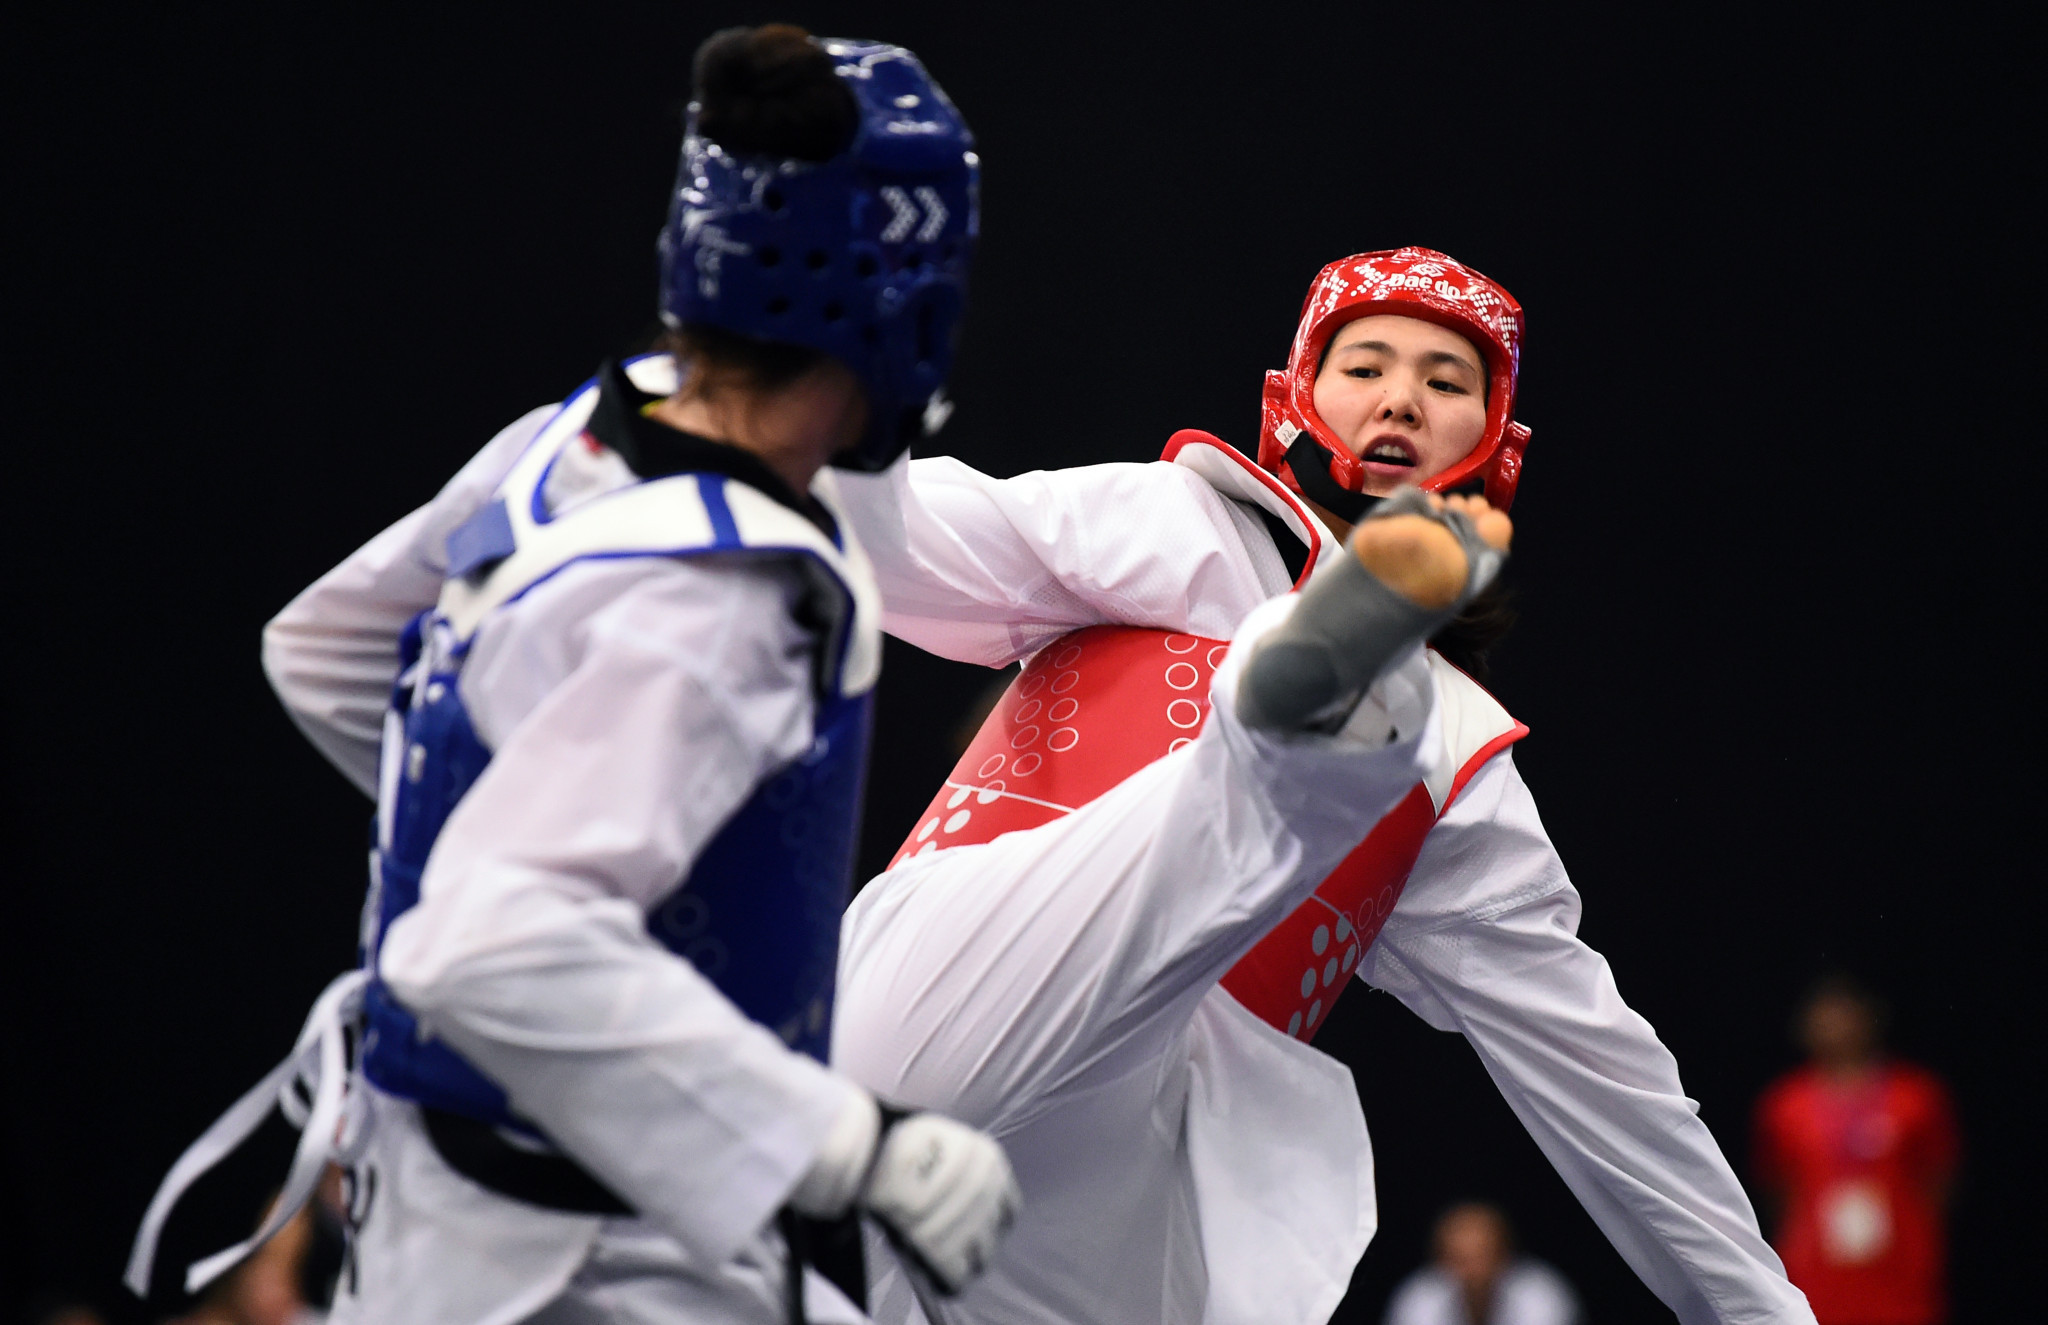 Further revenge for Zheng at World Taekwondo Grand Prix in Sofia